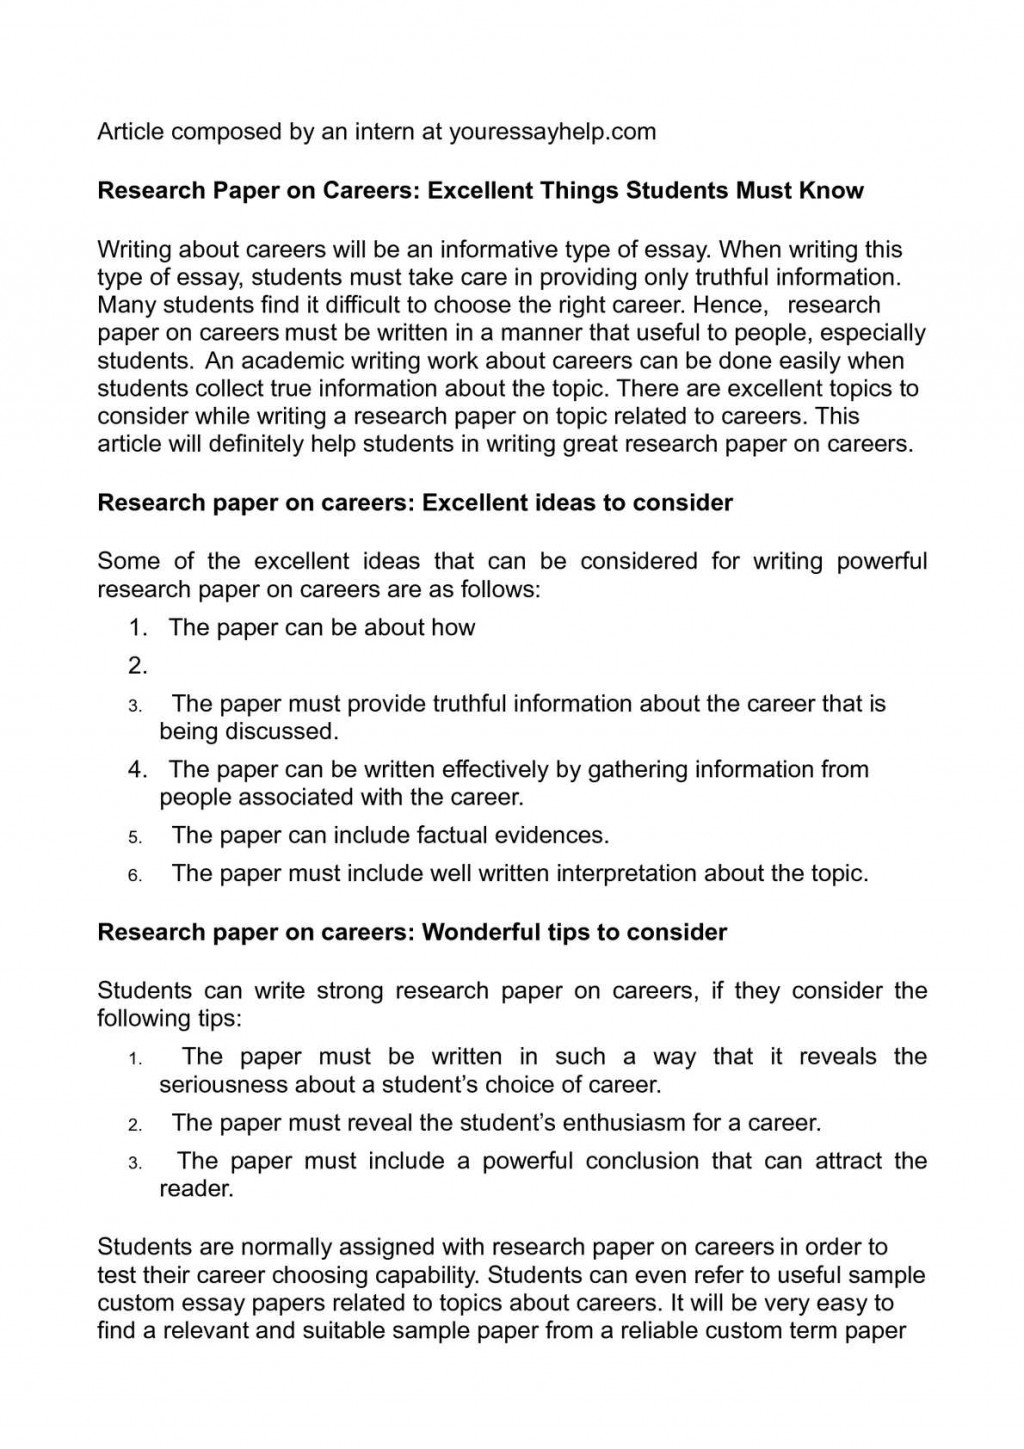 006 P1 Research Paper On Breathtaking Careers Thesis Statement For A Topics Large